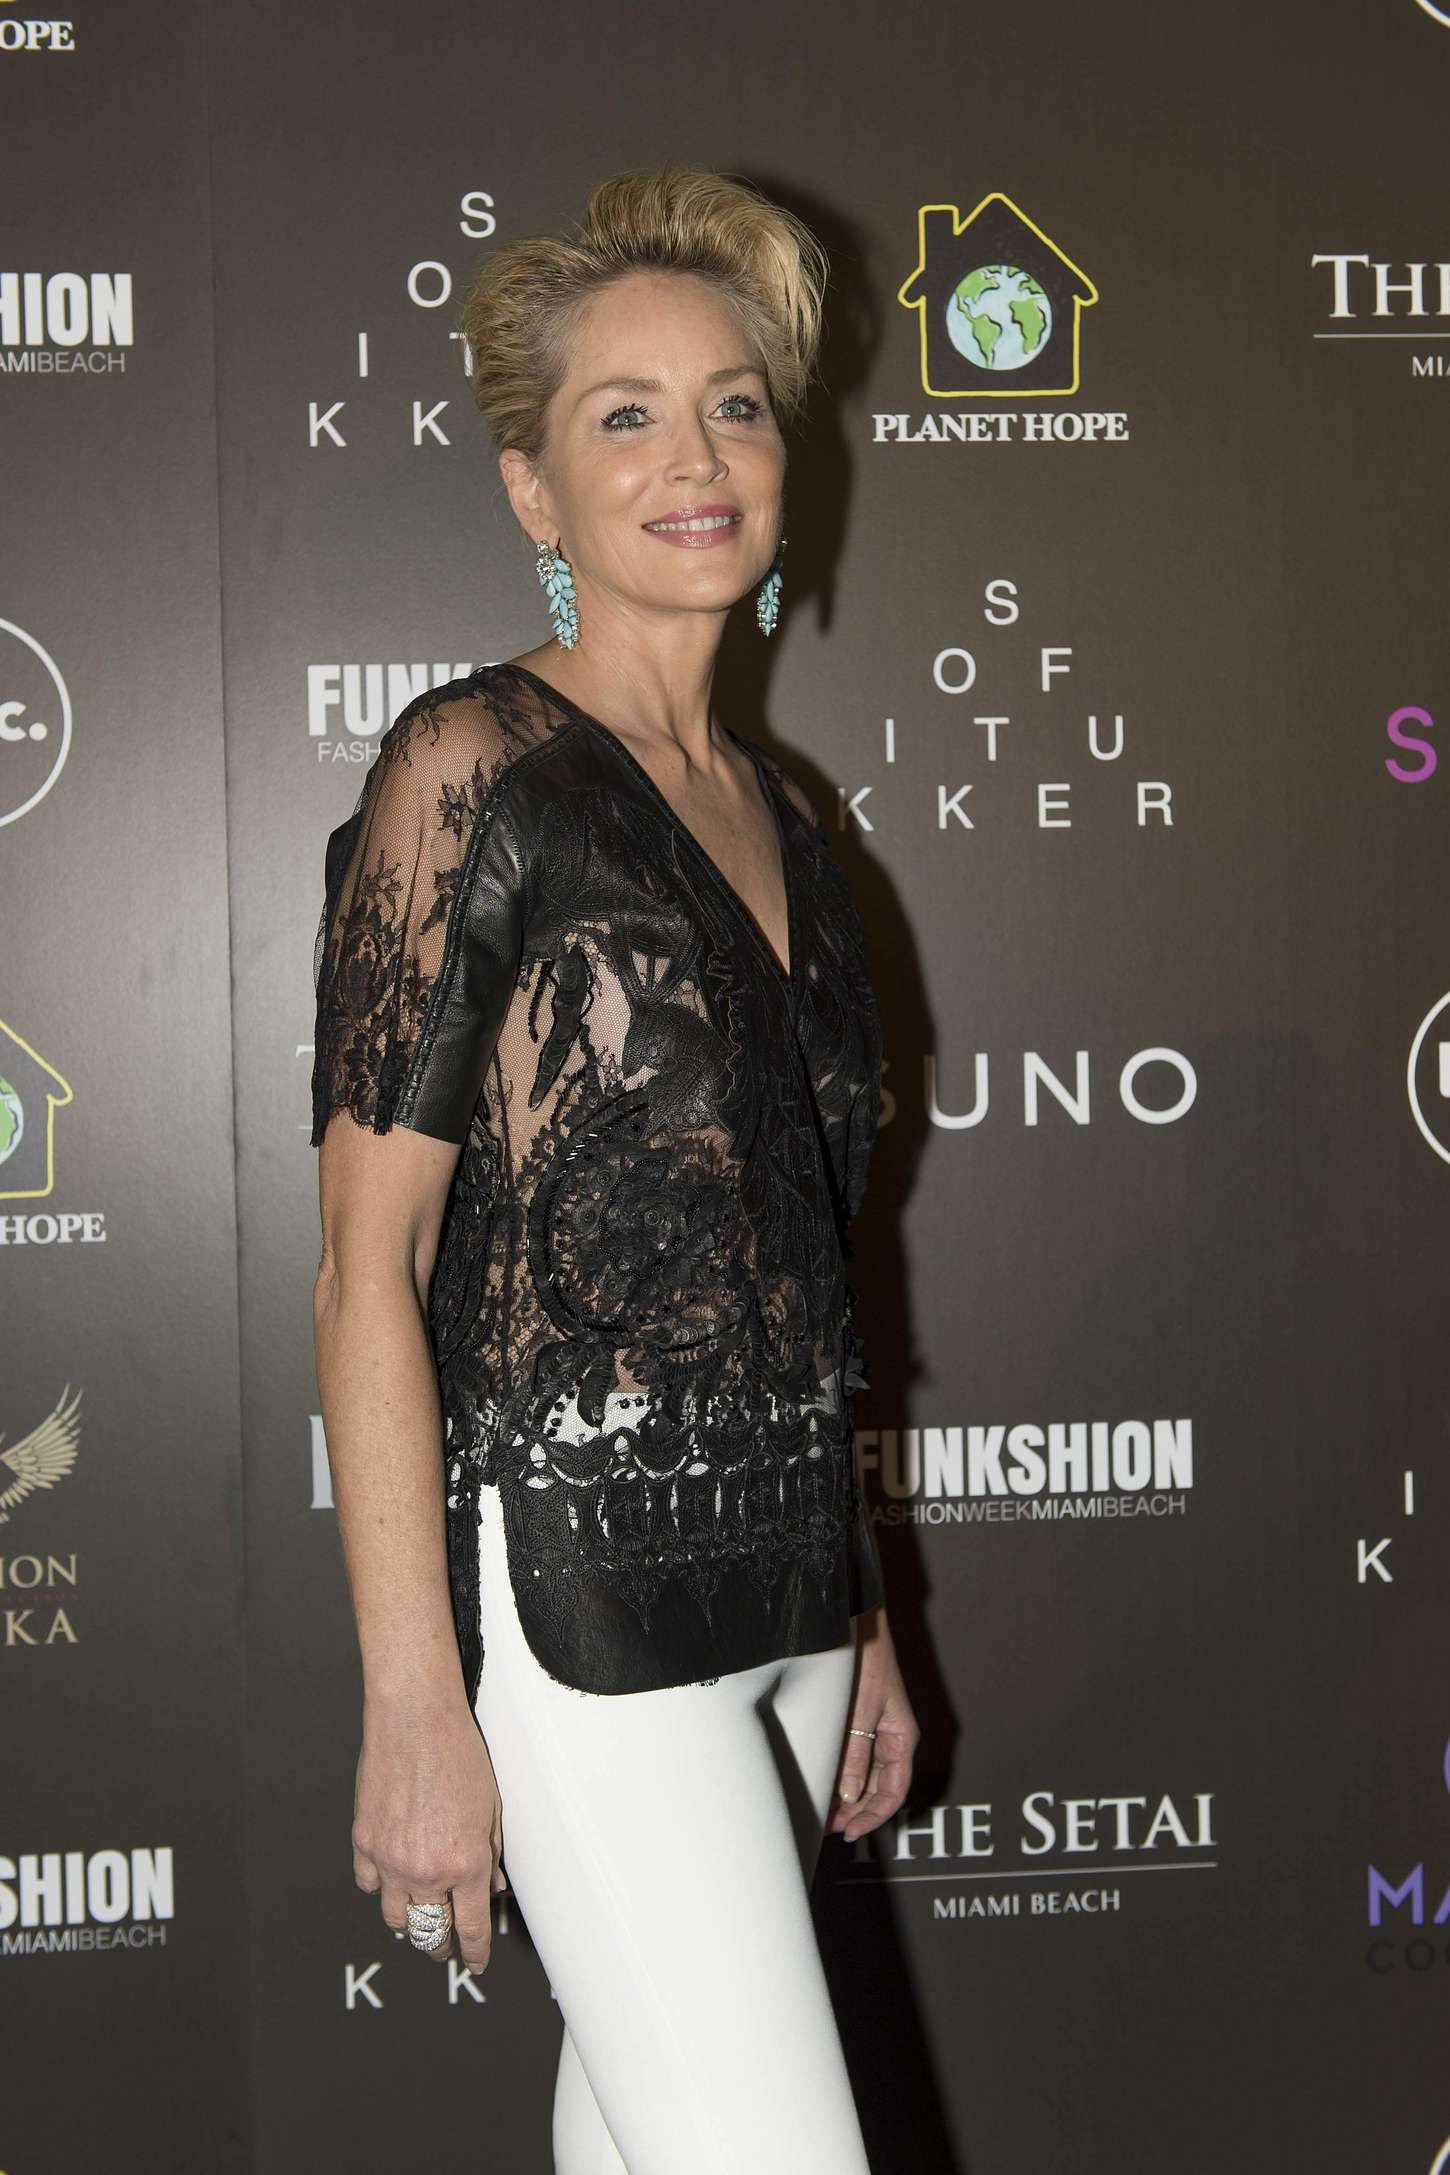 Sharon Stone Celebration of Hope Event by Planet Hope Foundation in Miami